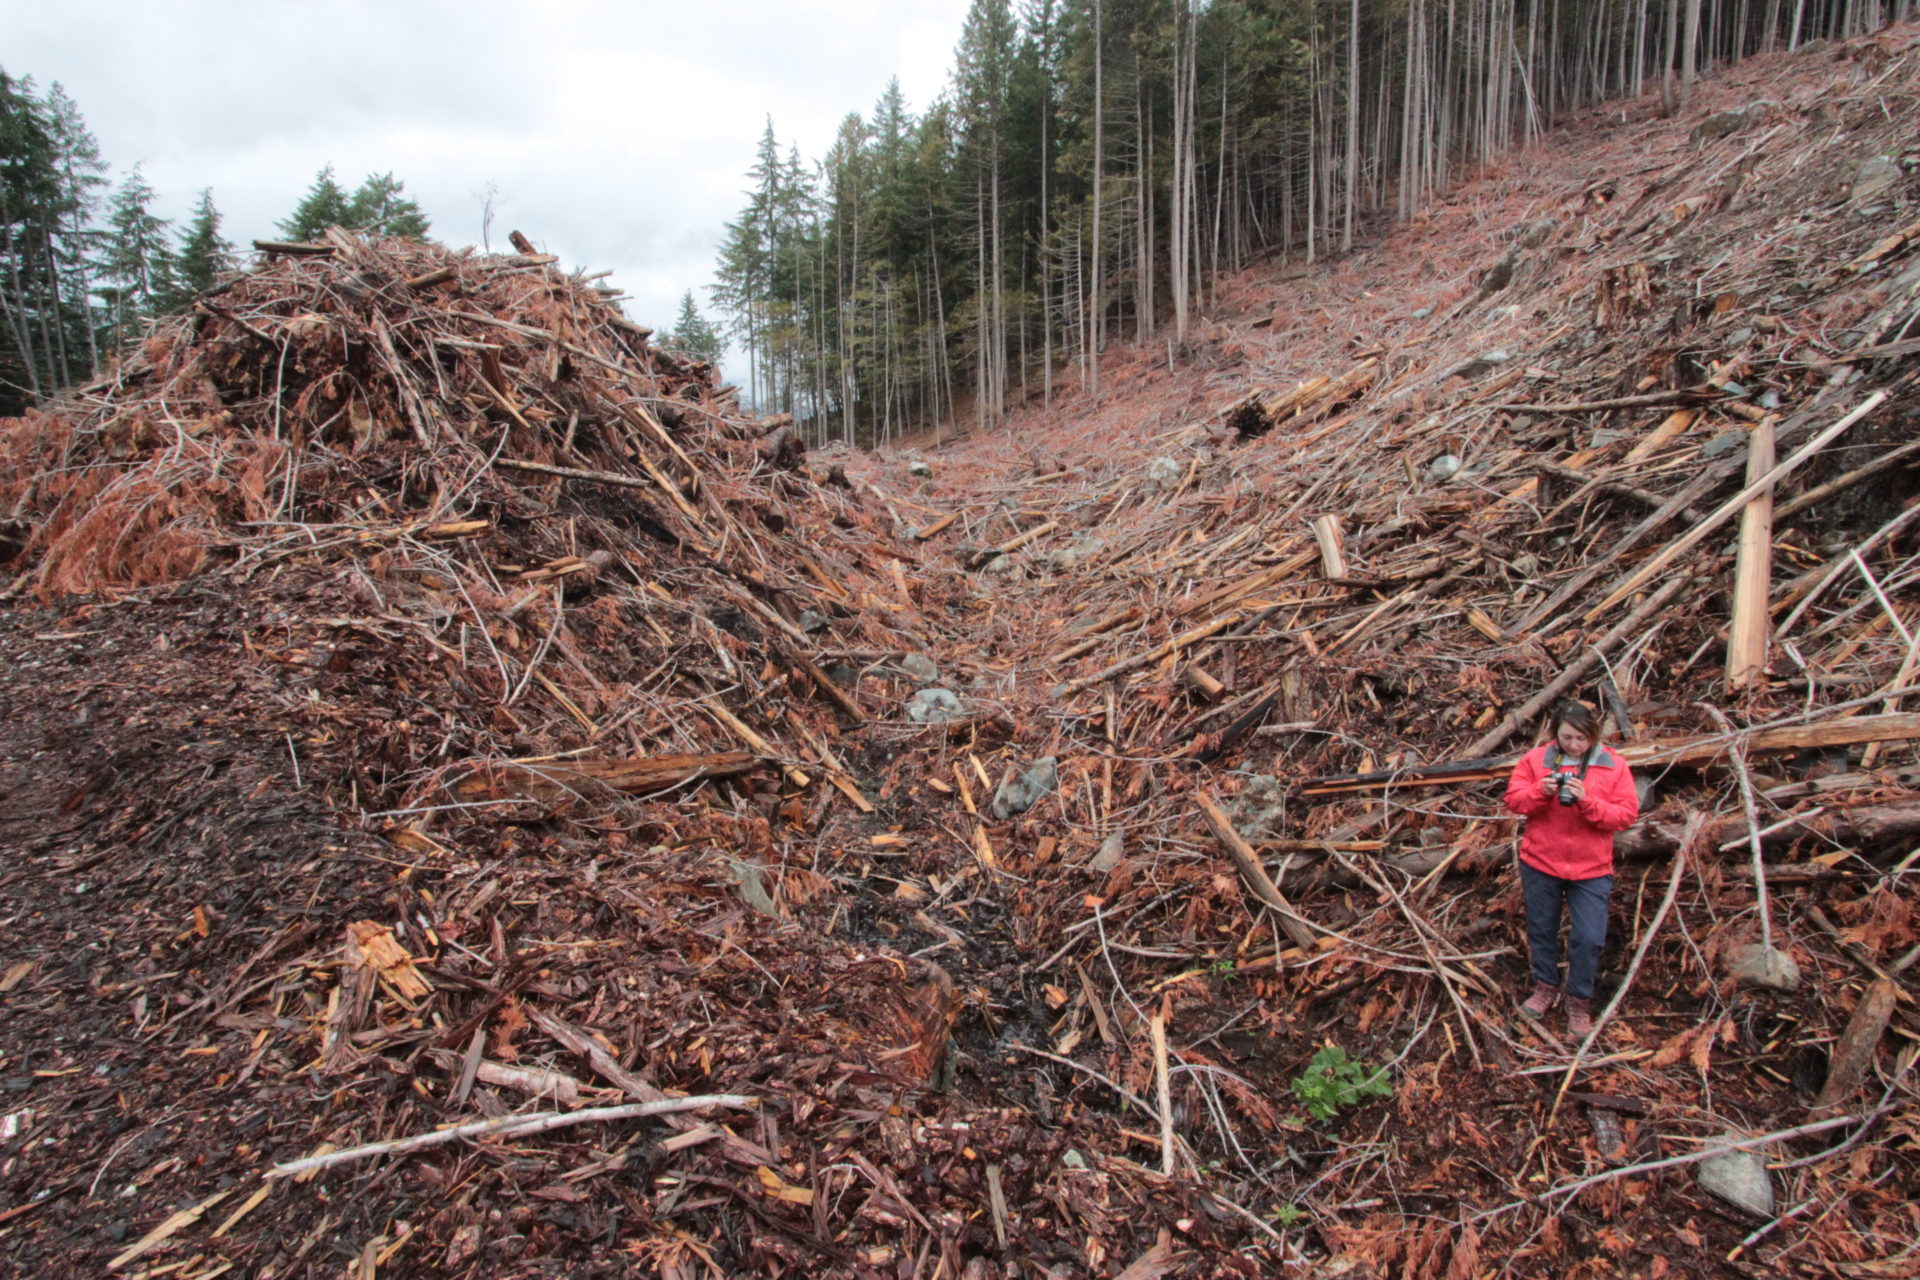 Charlotte Dawe, conservation and policy campaigner with the Wilderness Committee, stands in the Karen Creek clearcut. Photo: Wilderness Committee